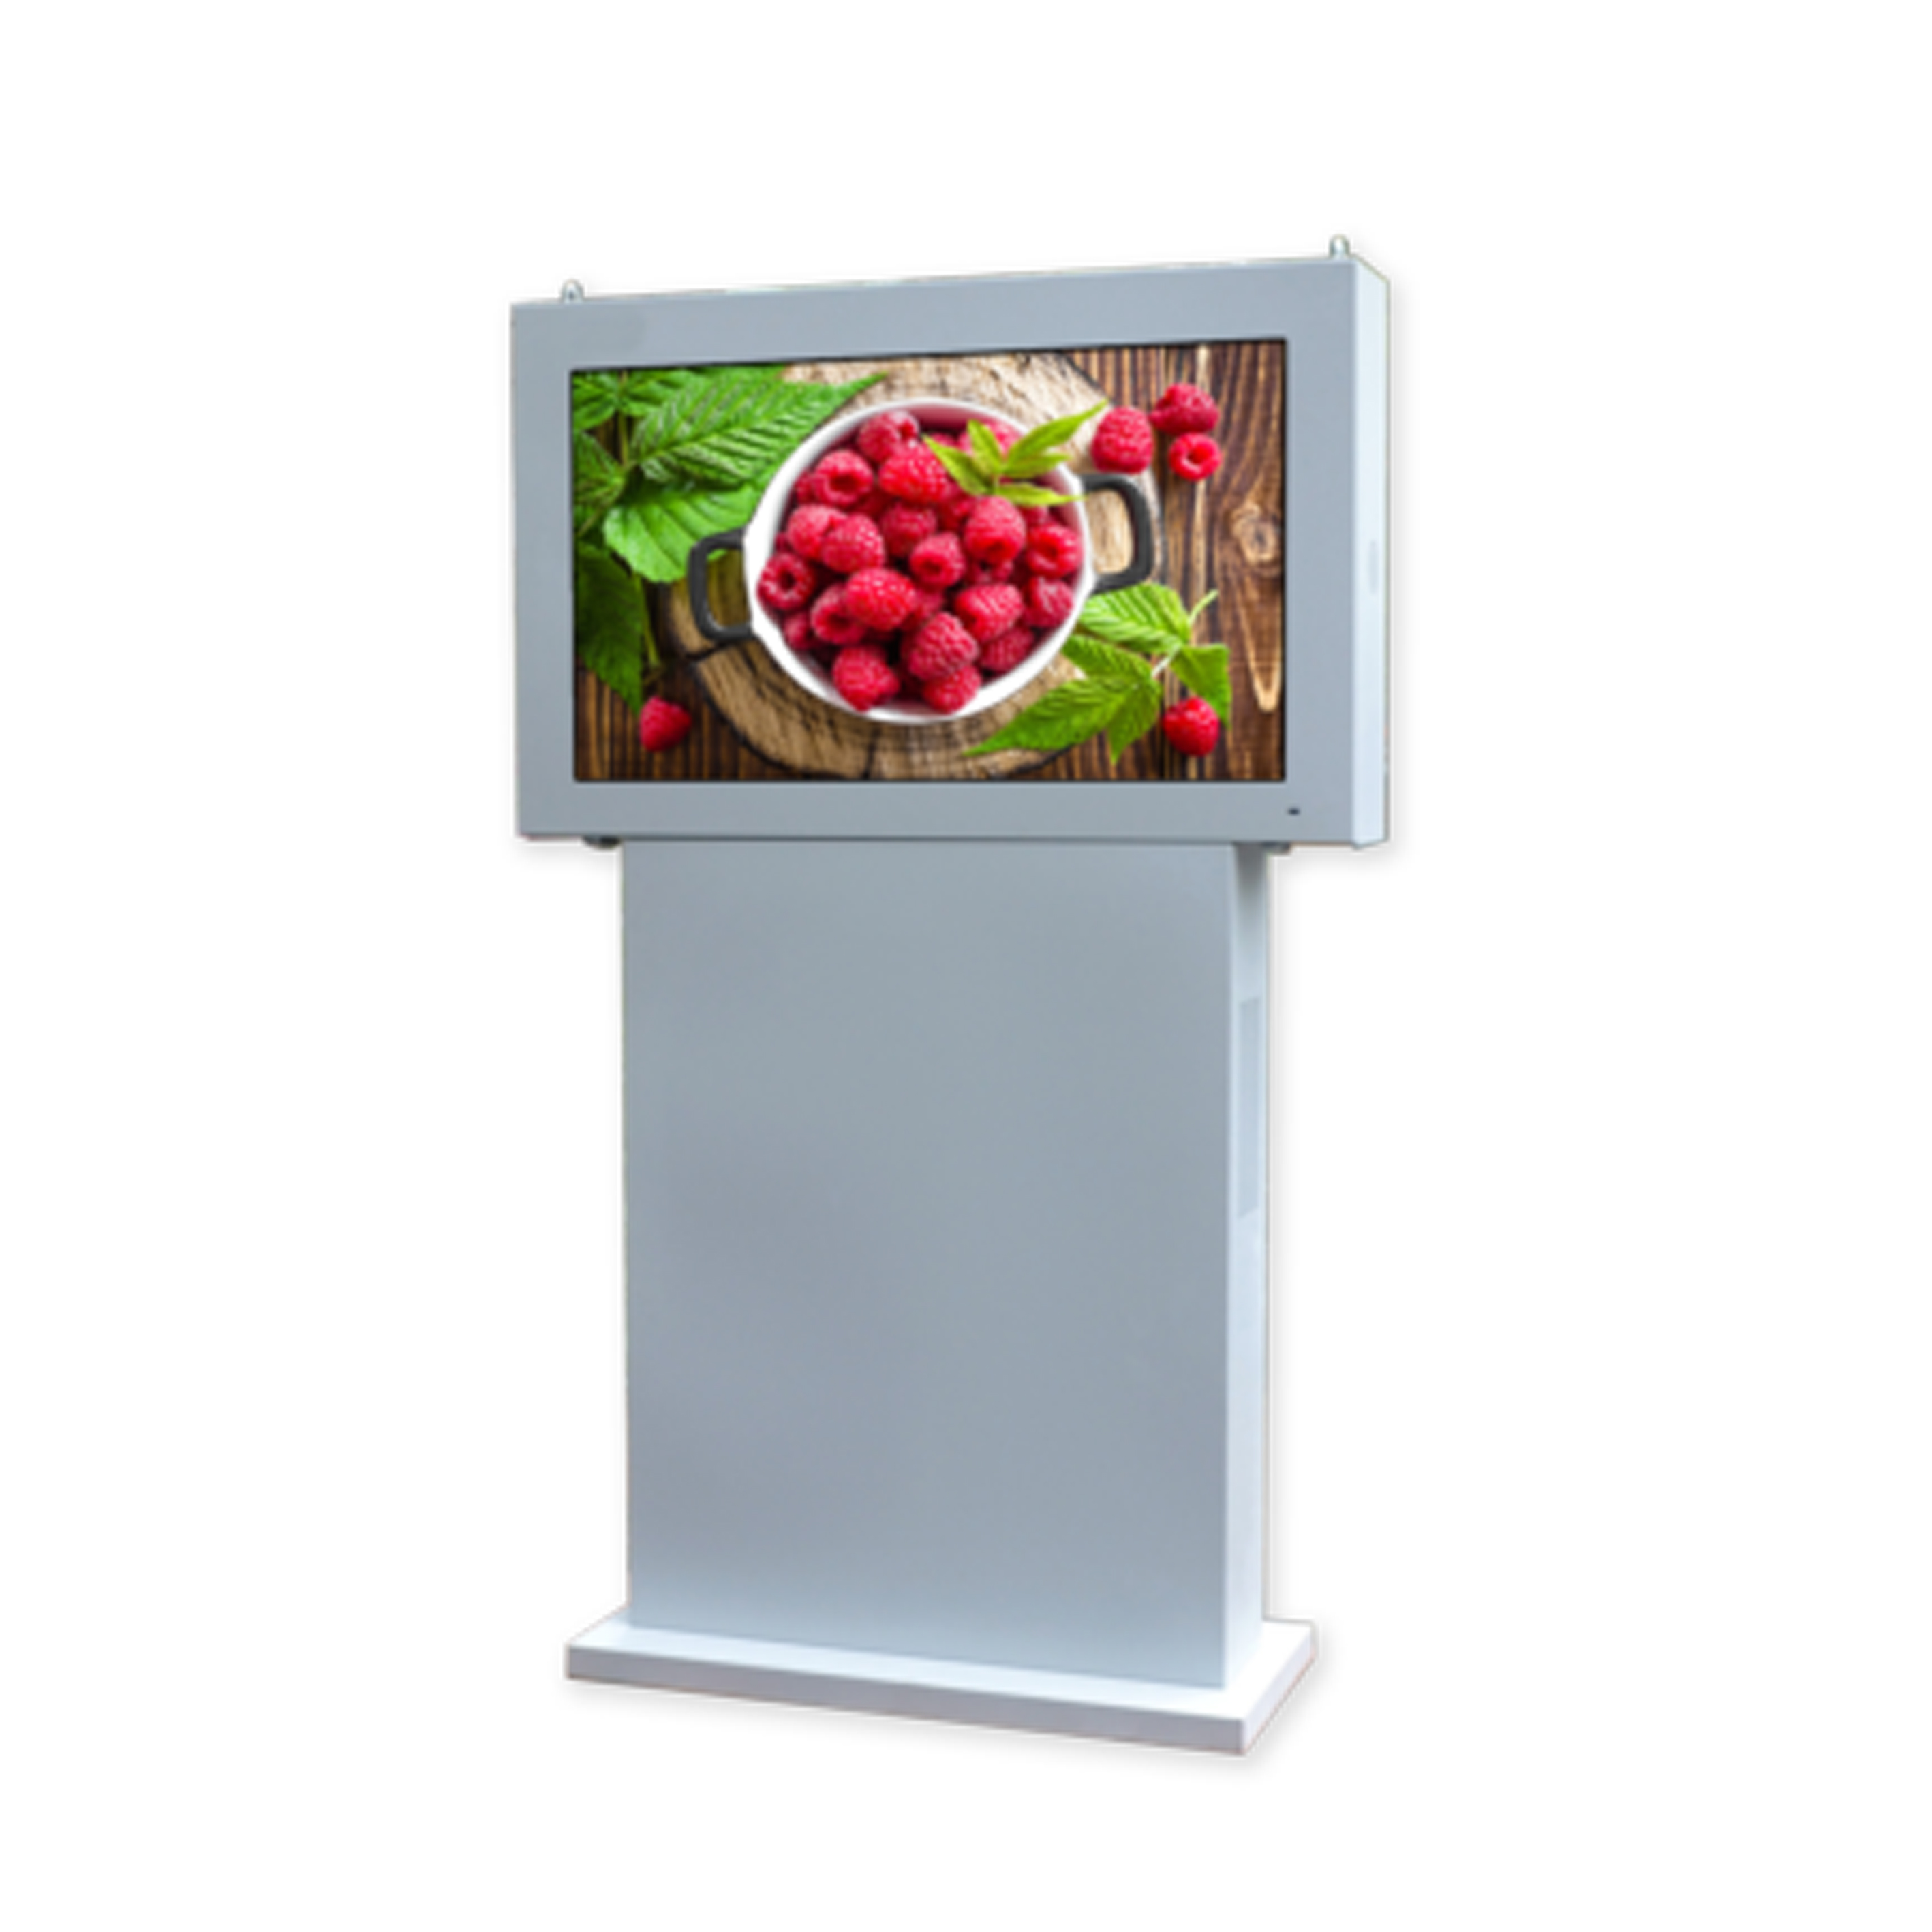 Outdoor Flooring digital signage advertising Signage Lcd Display